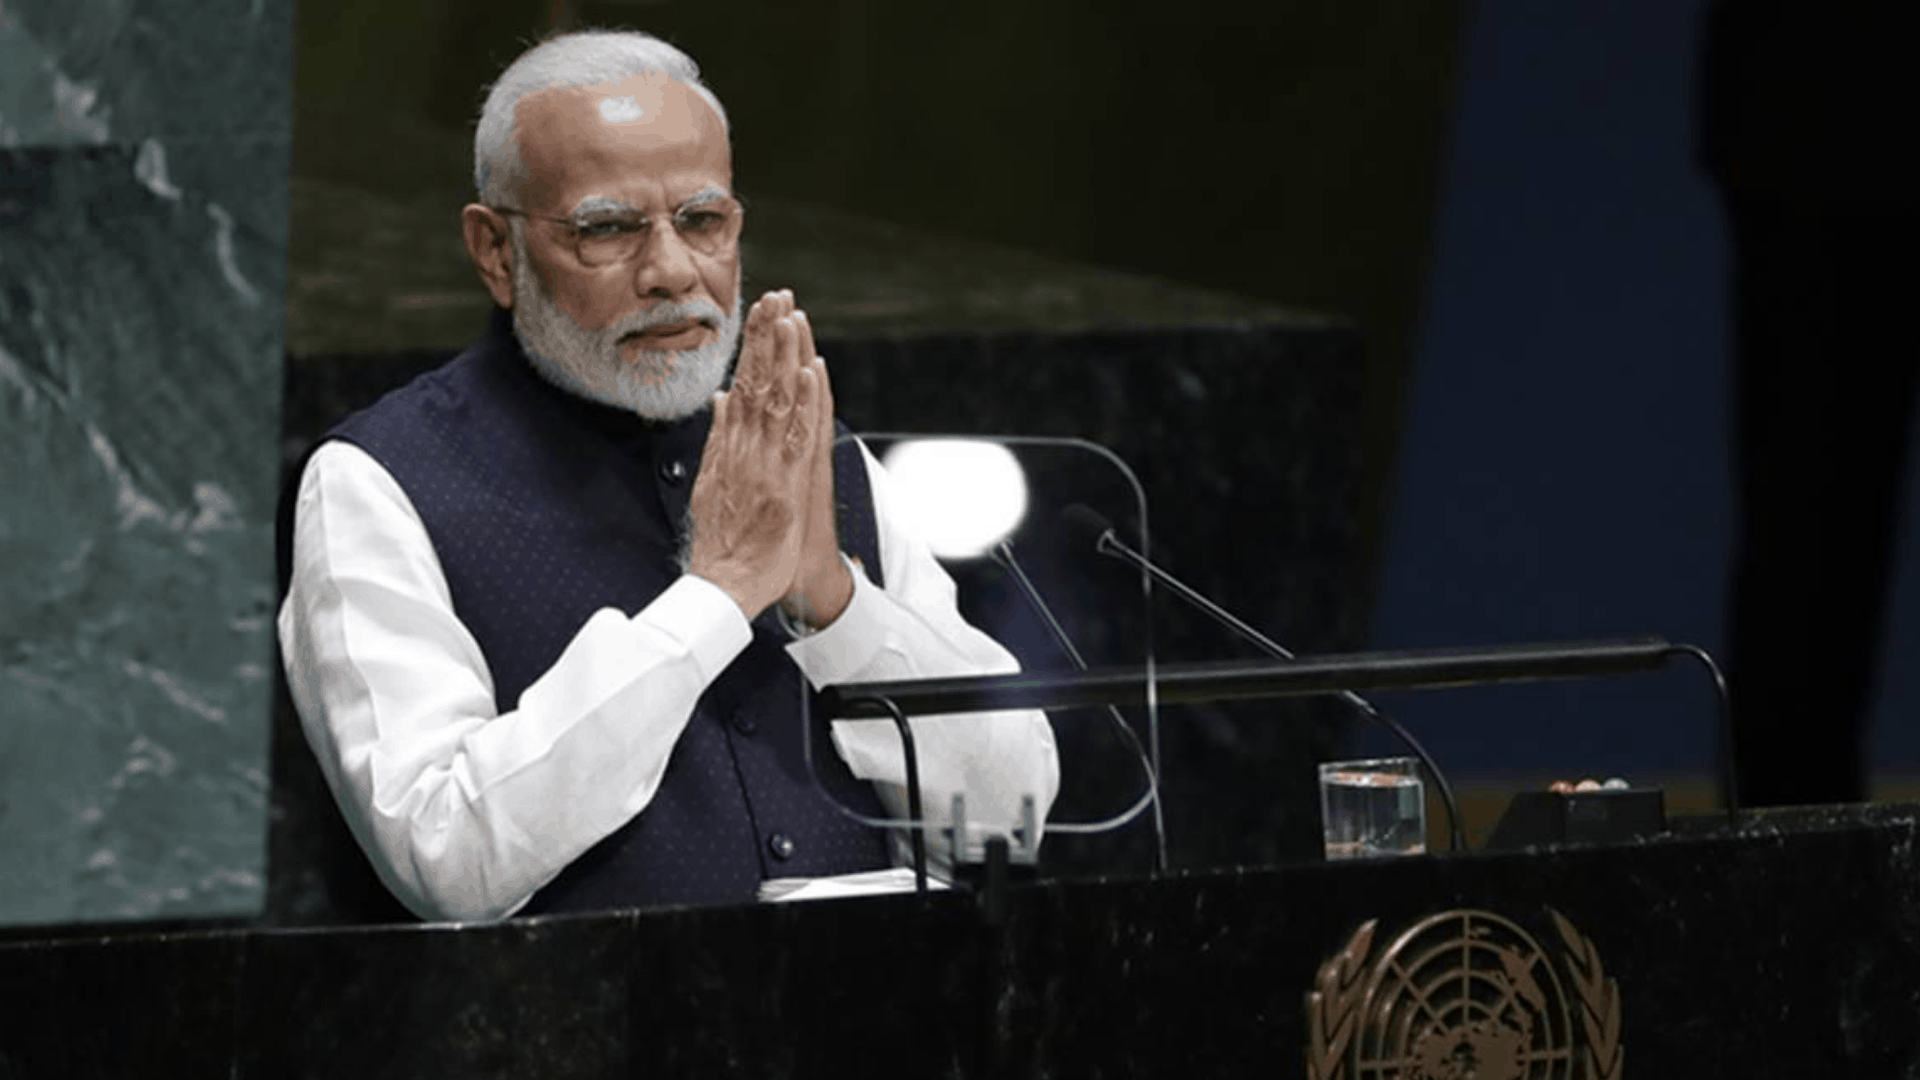 Highlights: What PM Modi said at UN